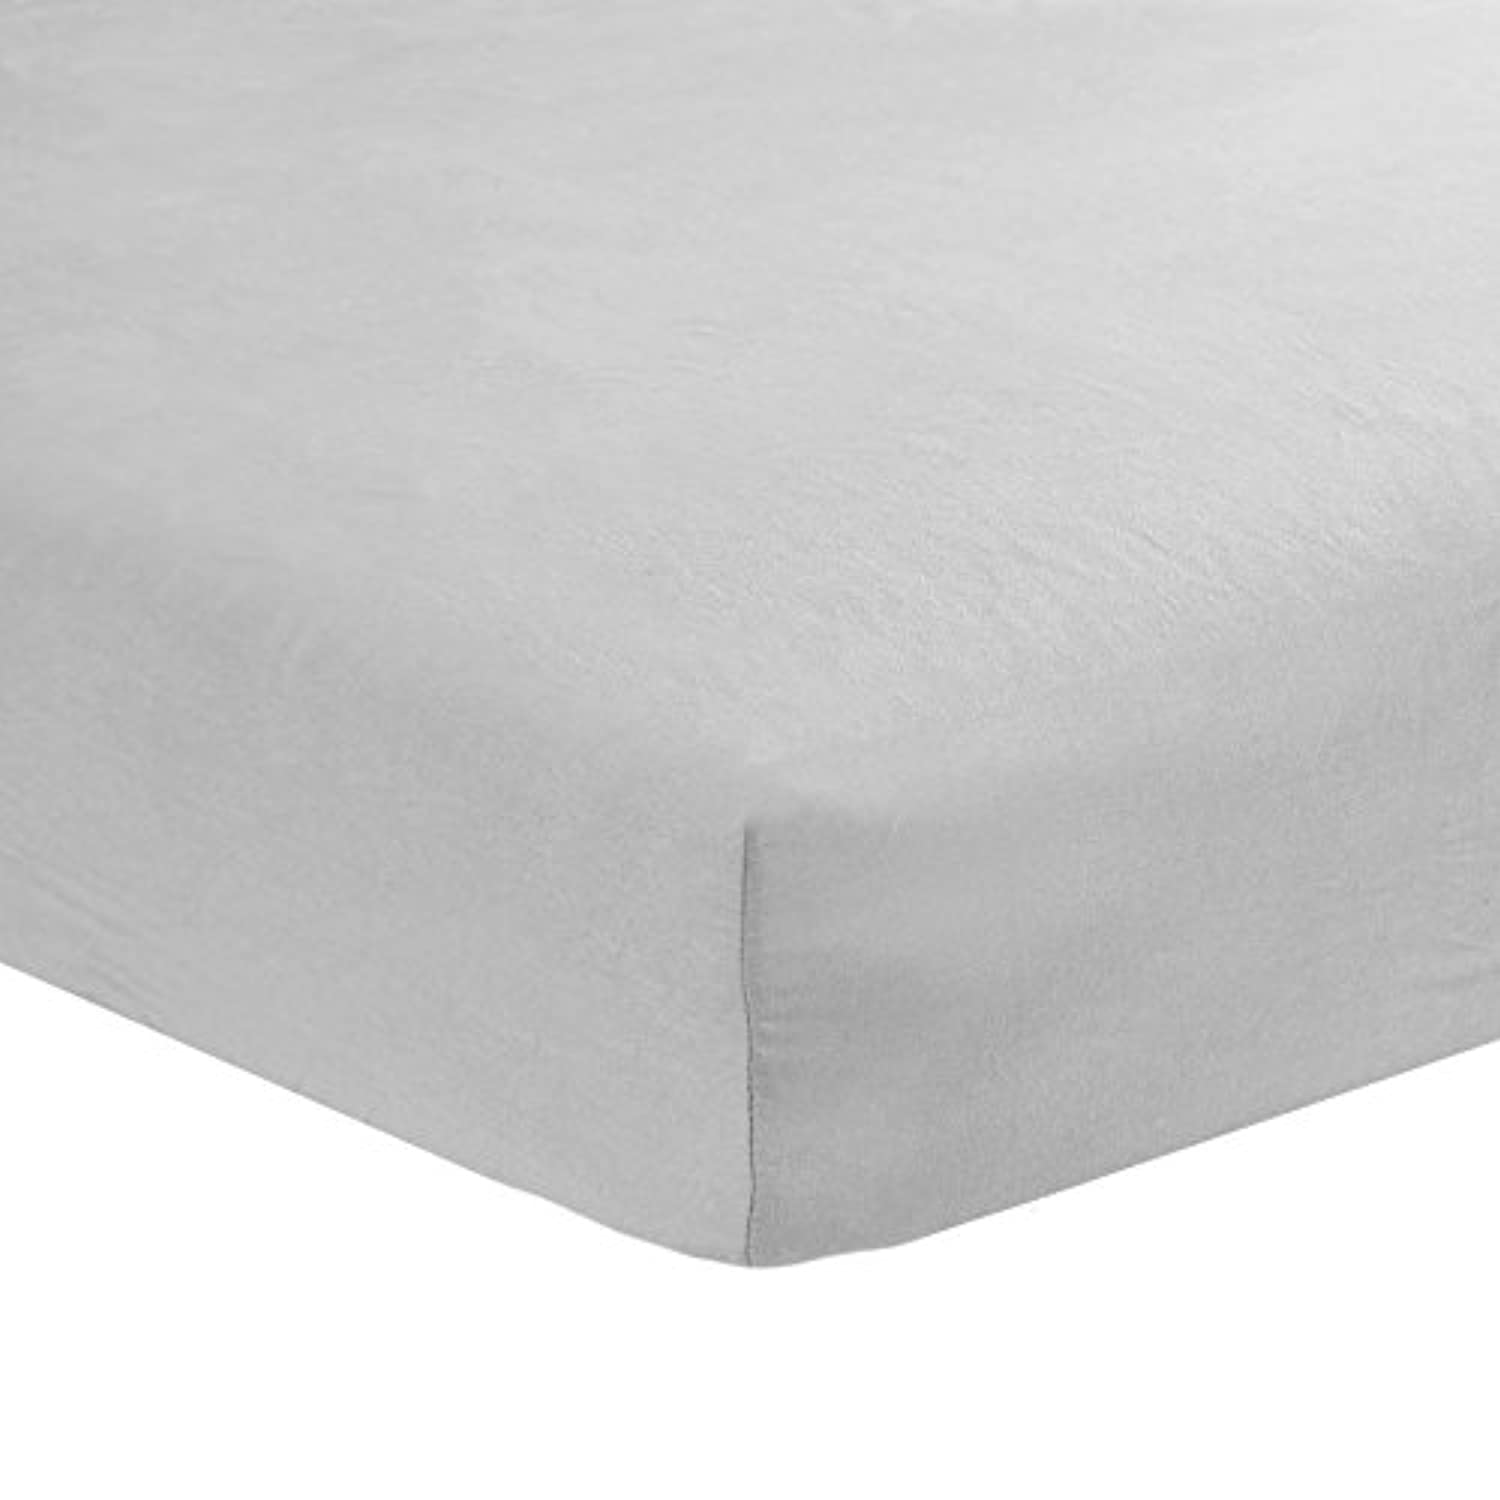 Carter's Sateen Fitted Crib Sheet, Smoke Grey by Carter's